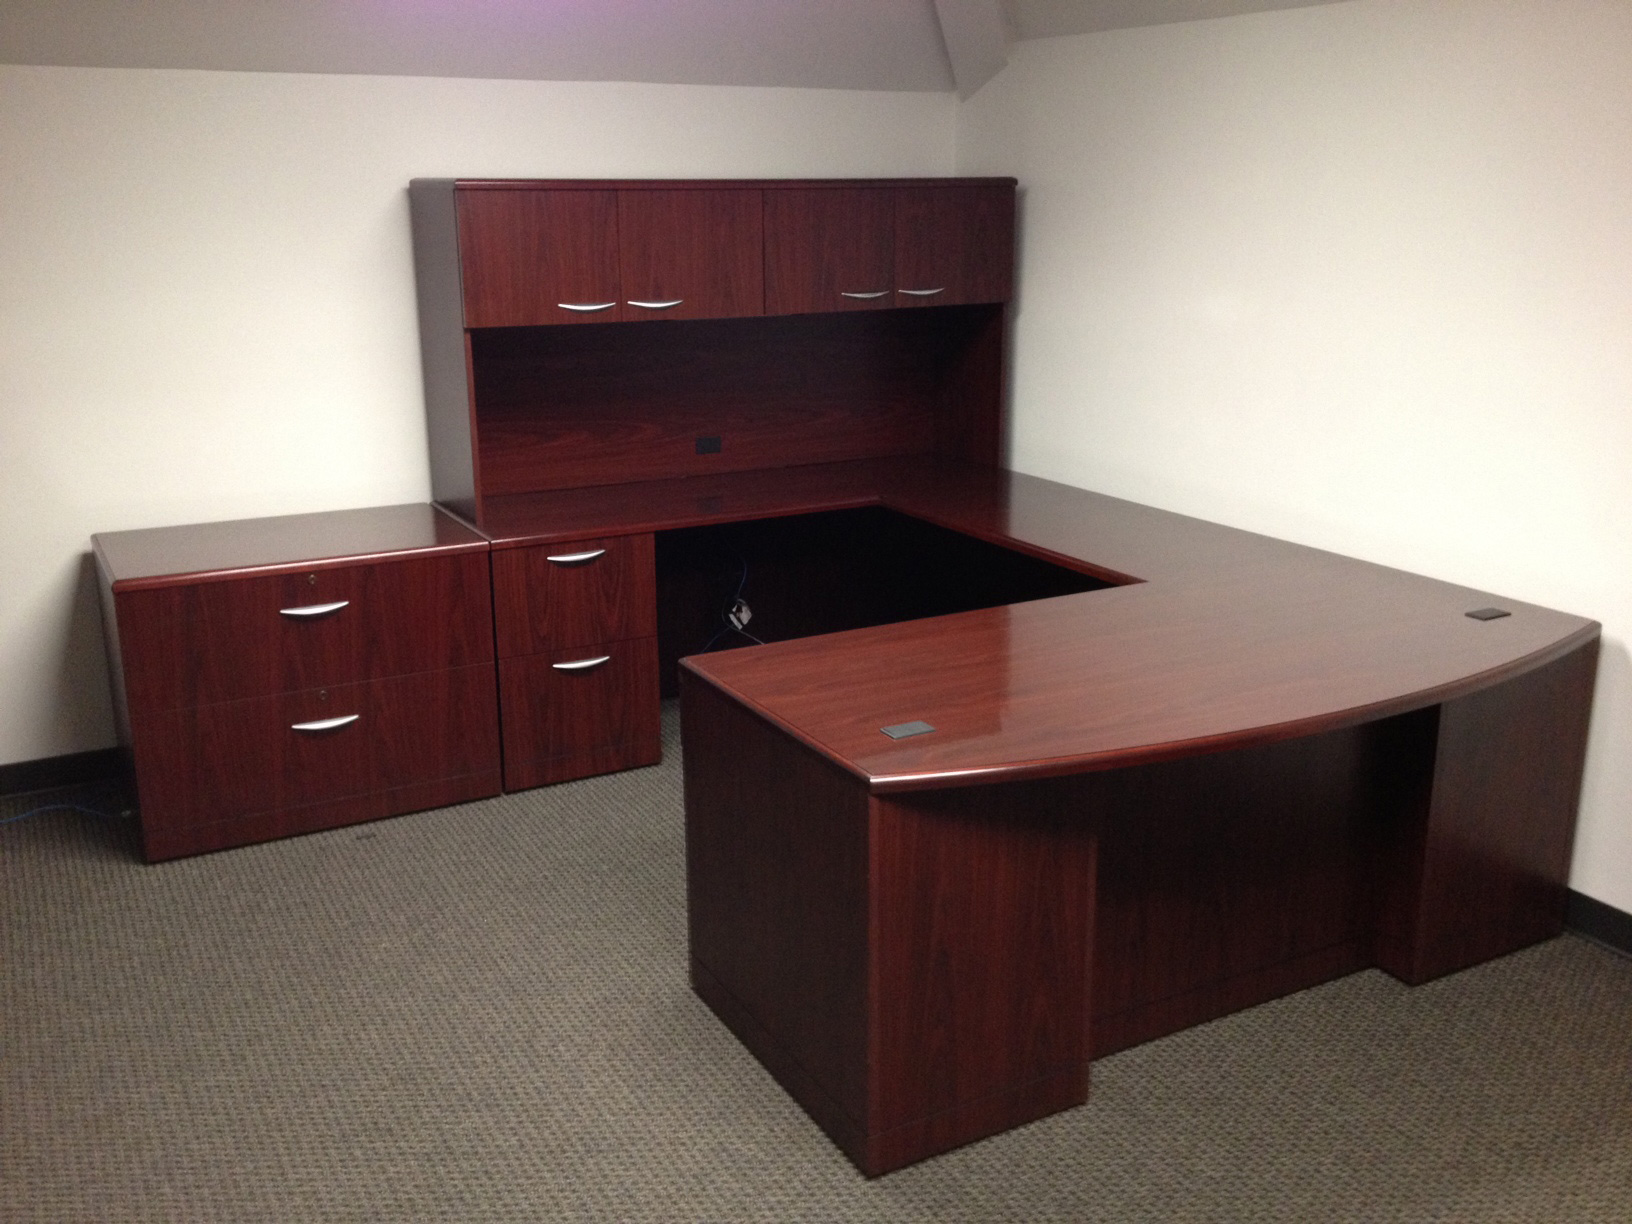 desk-with-hutch-manasota-office-supplies-llc.jpg